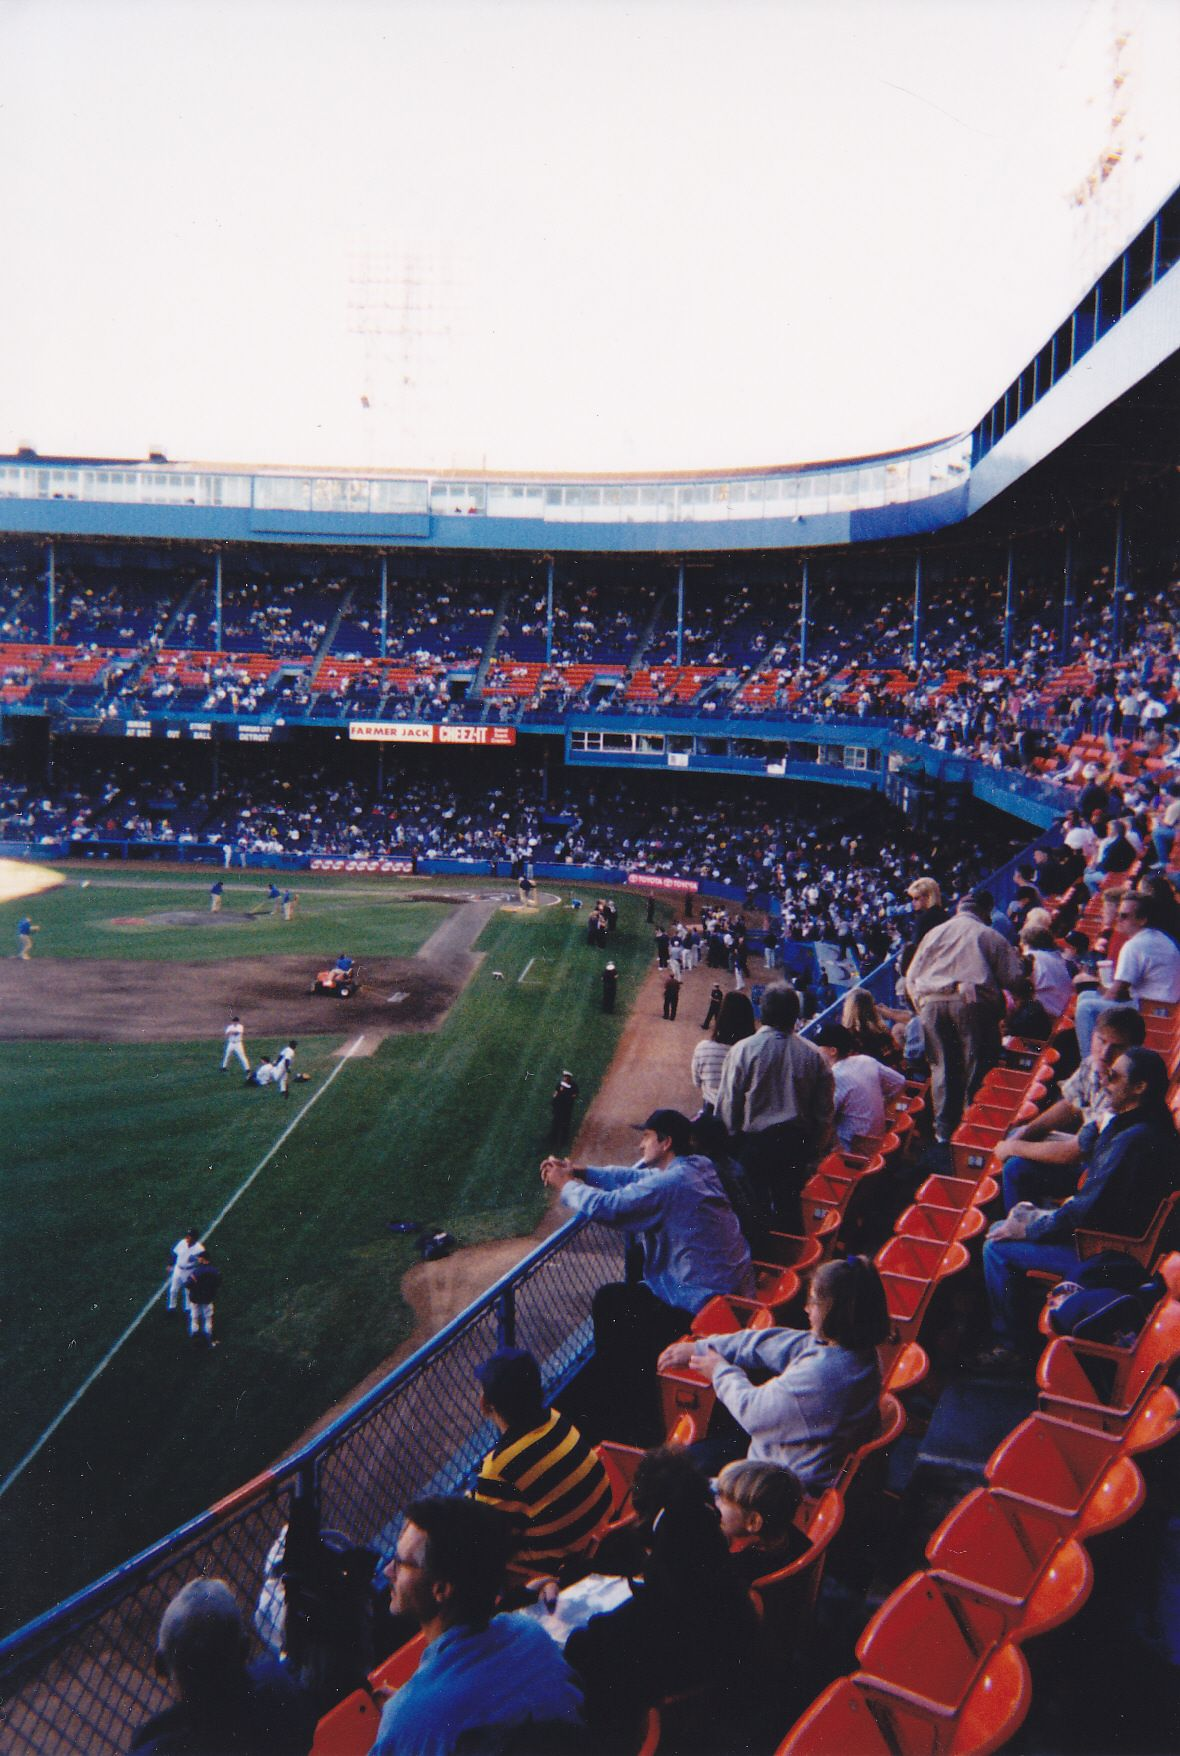 The Third To Last Game At Old Tiger Stadium Http Www Baseball Reference Com Boxes Det Det199909250 Sh Baseball Stadiums Parks Major League Baseball Stadiums